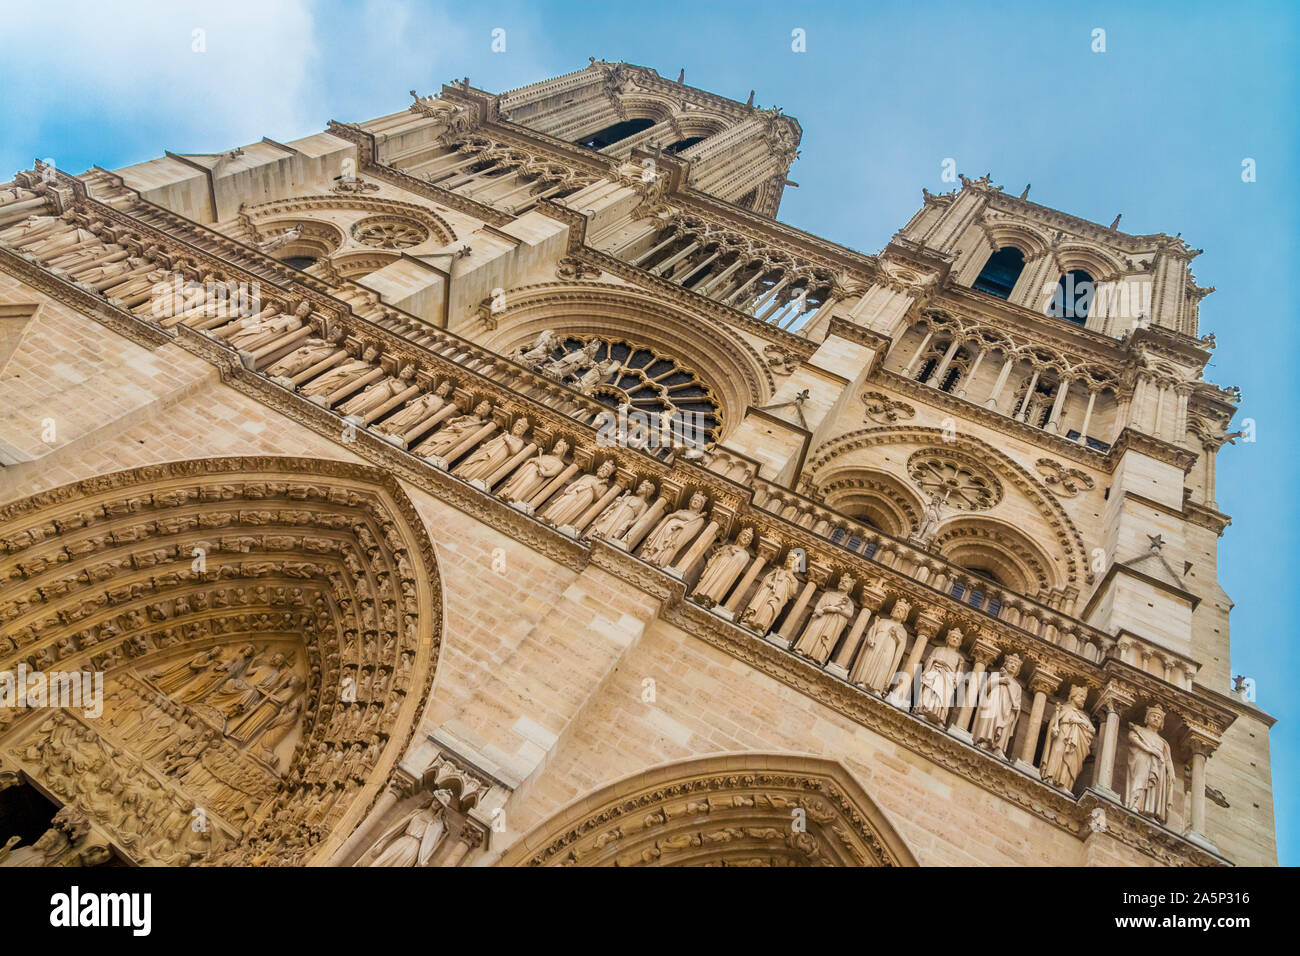 Slanted view of the famous west façade of Notre-Dame cathedral on the Île de la Cité in Paris with a close-up of the Gallery of Kings, a row of 28... Stock Photo